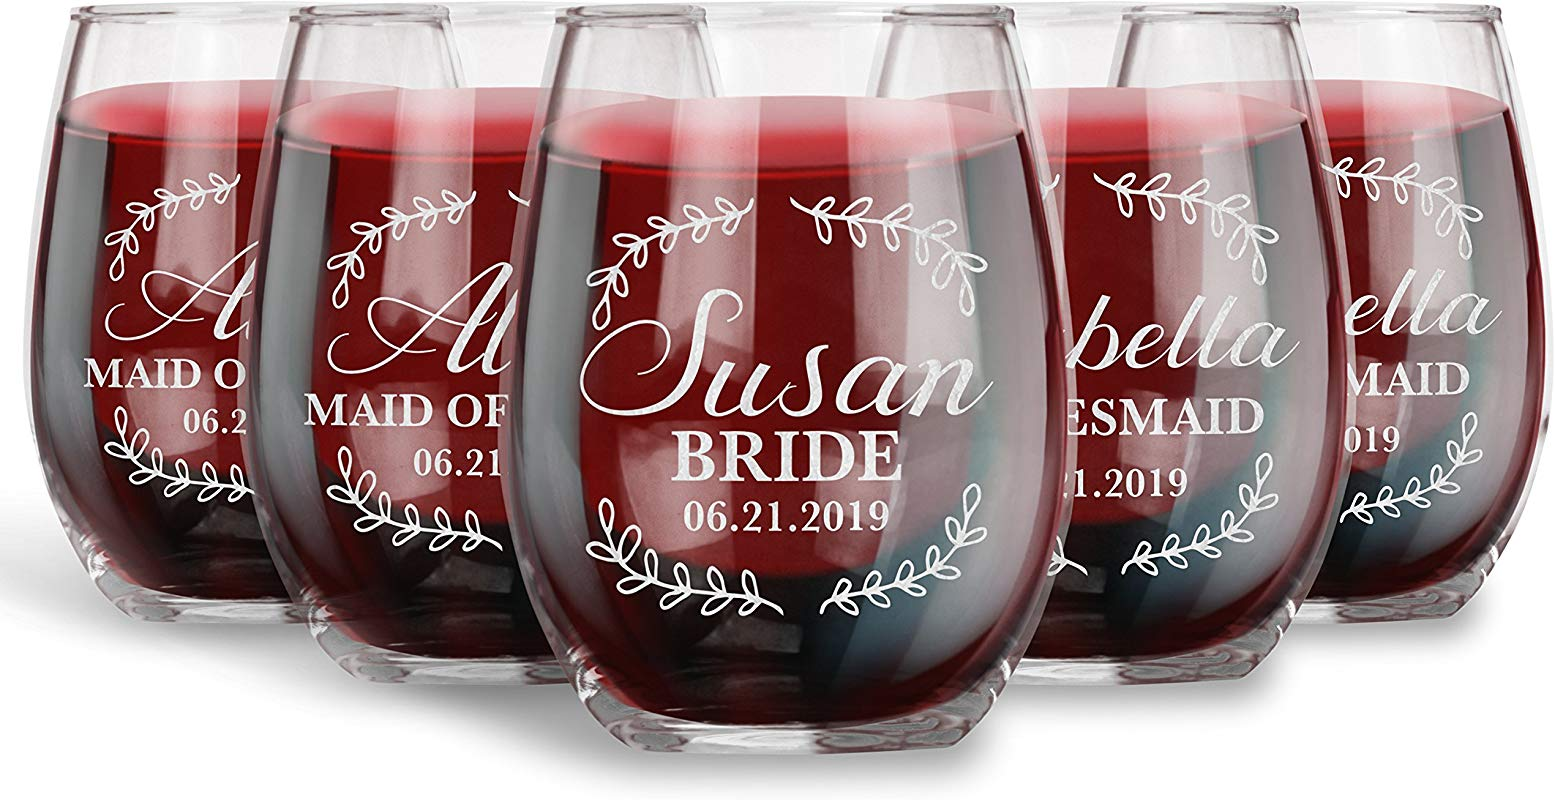 Bridesmaid Gifts For Wedding Set Of 6 Personalized 15 Oz Stemless Wine Glass Floral Proposal Engraved With Title Name And Date Wedding Gift Ideas